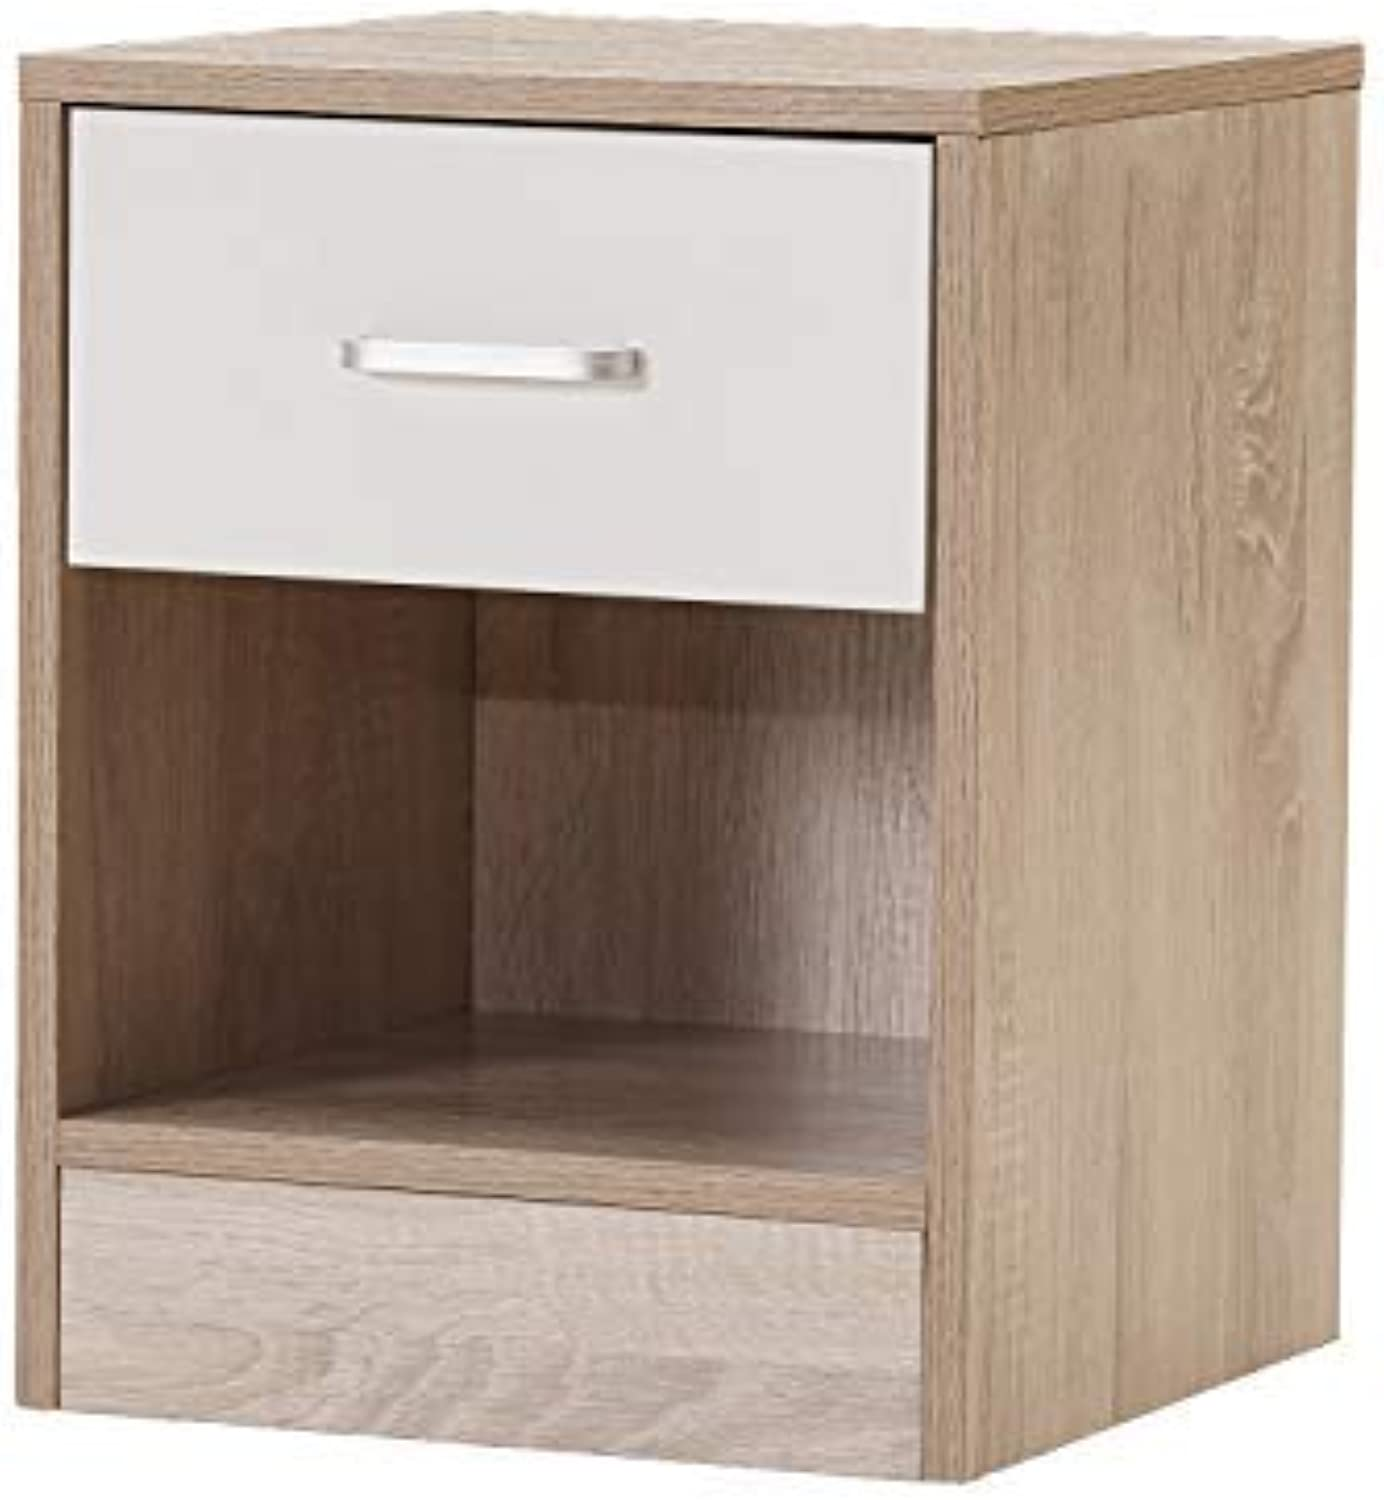 Night Stand Accent Table with Drawer and Cabinet for Storage (BASS-1BH-DC)